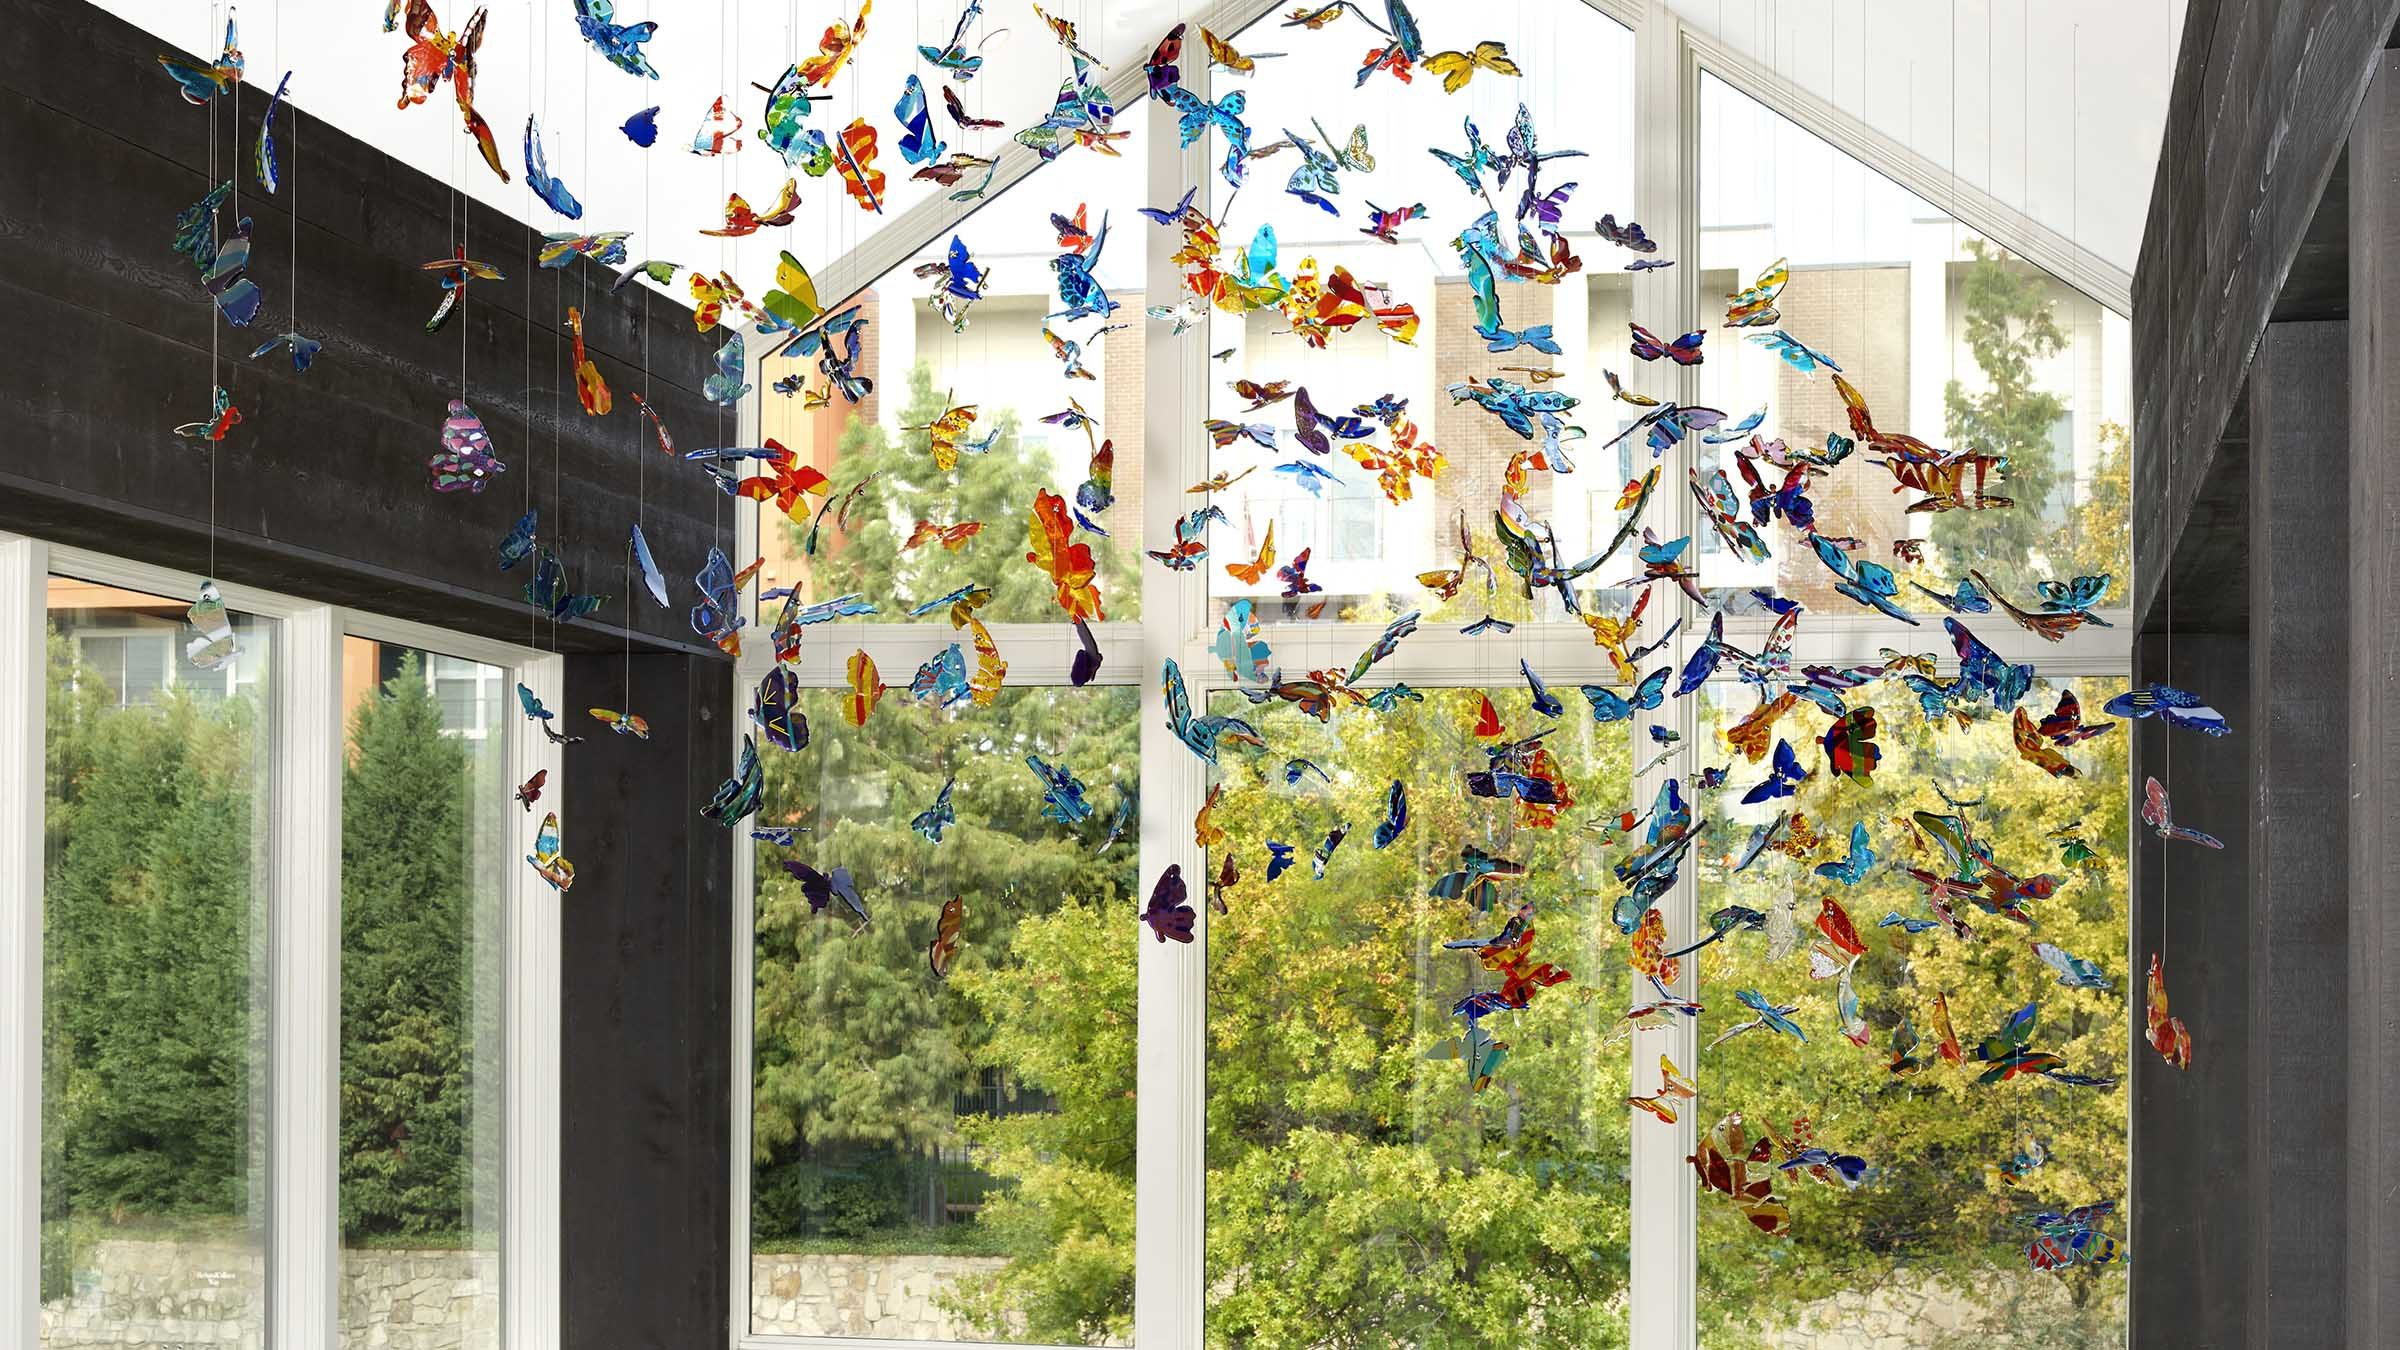 Carlyn Ray Designs Community Installation Image